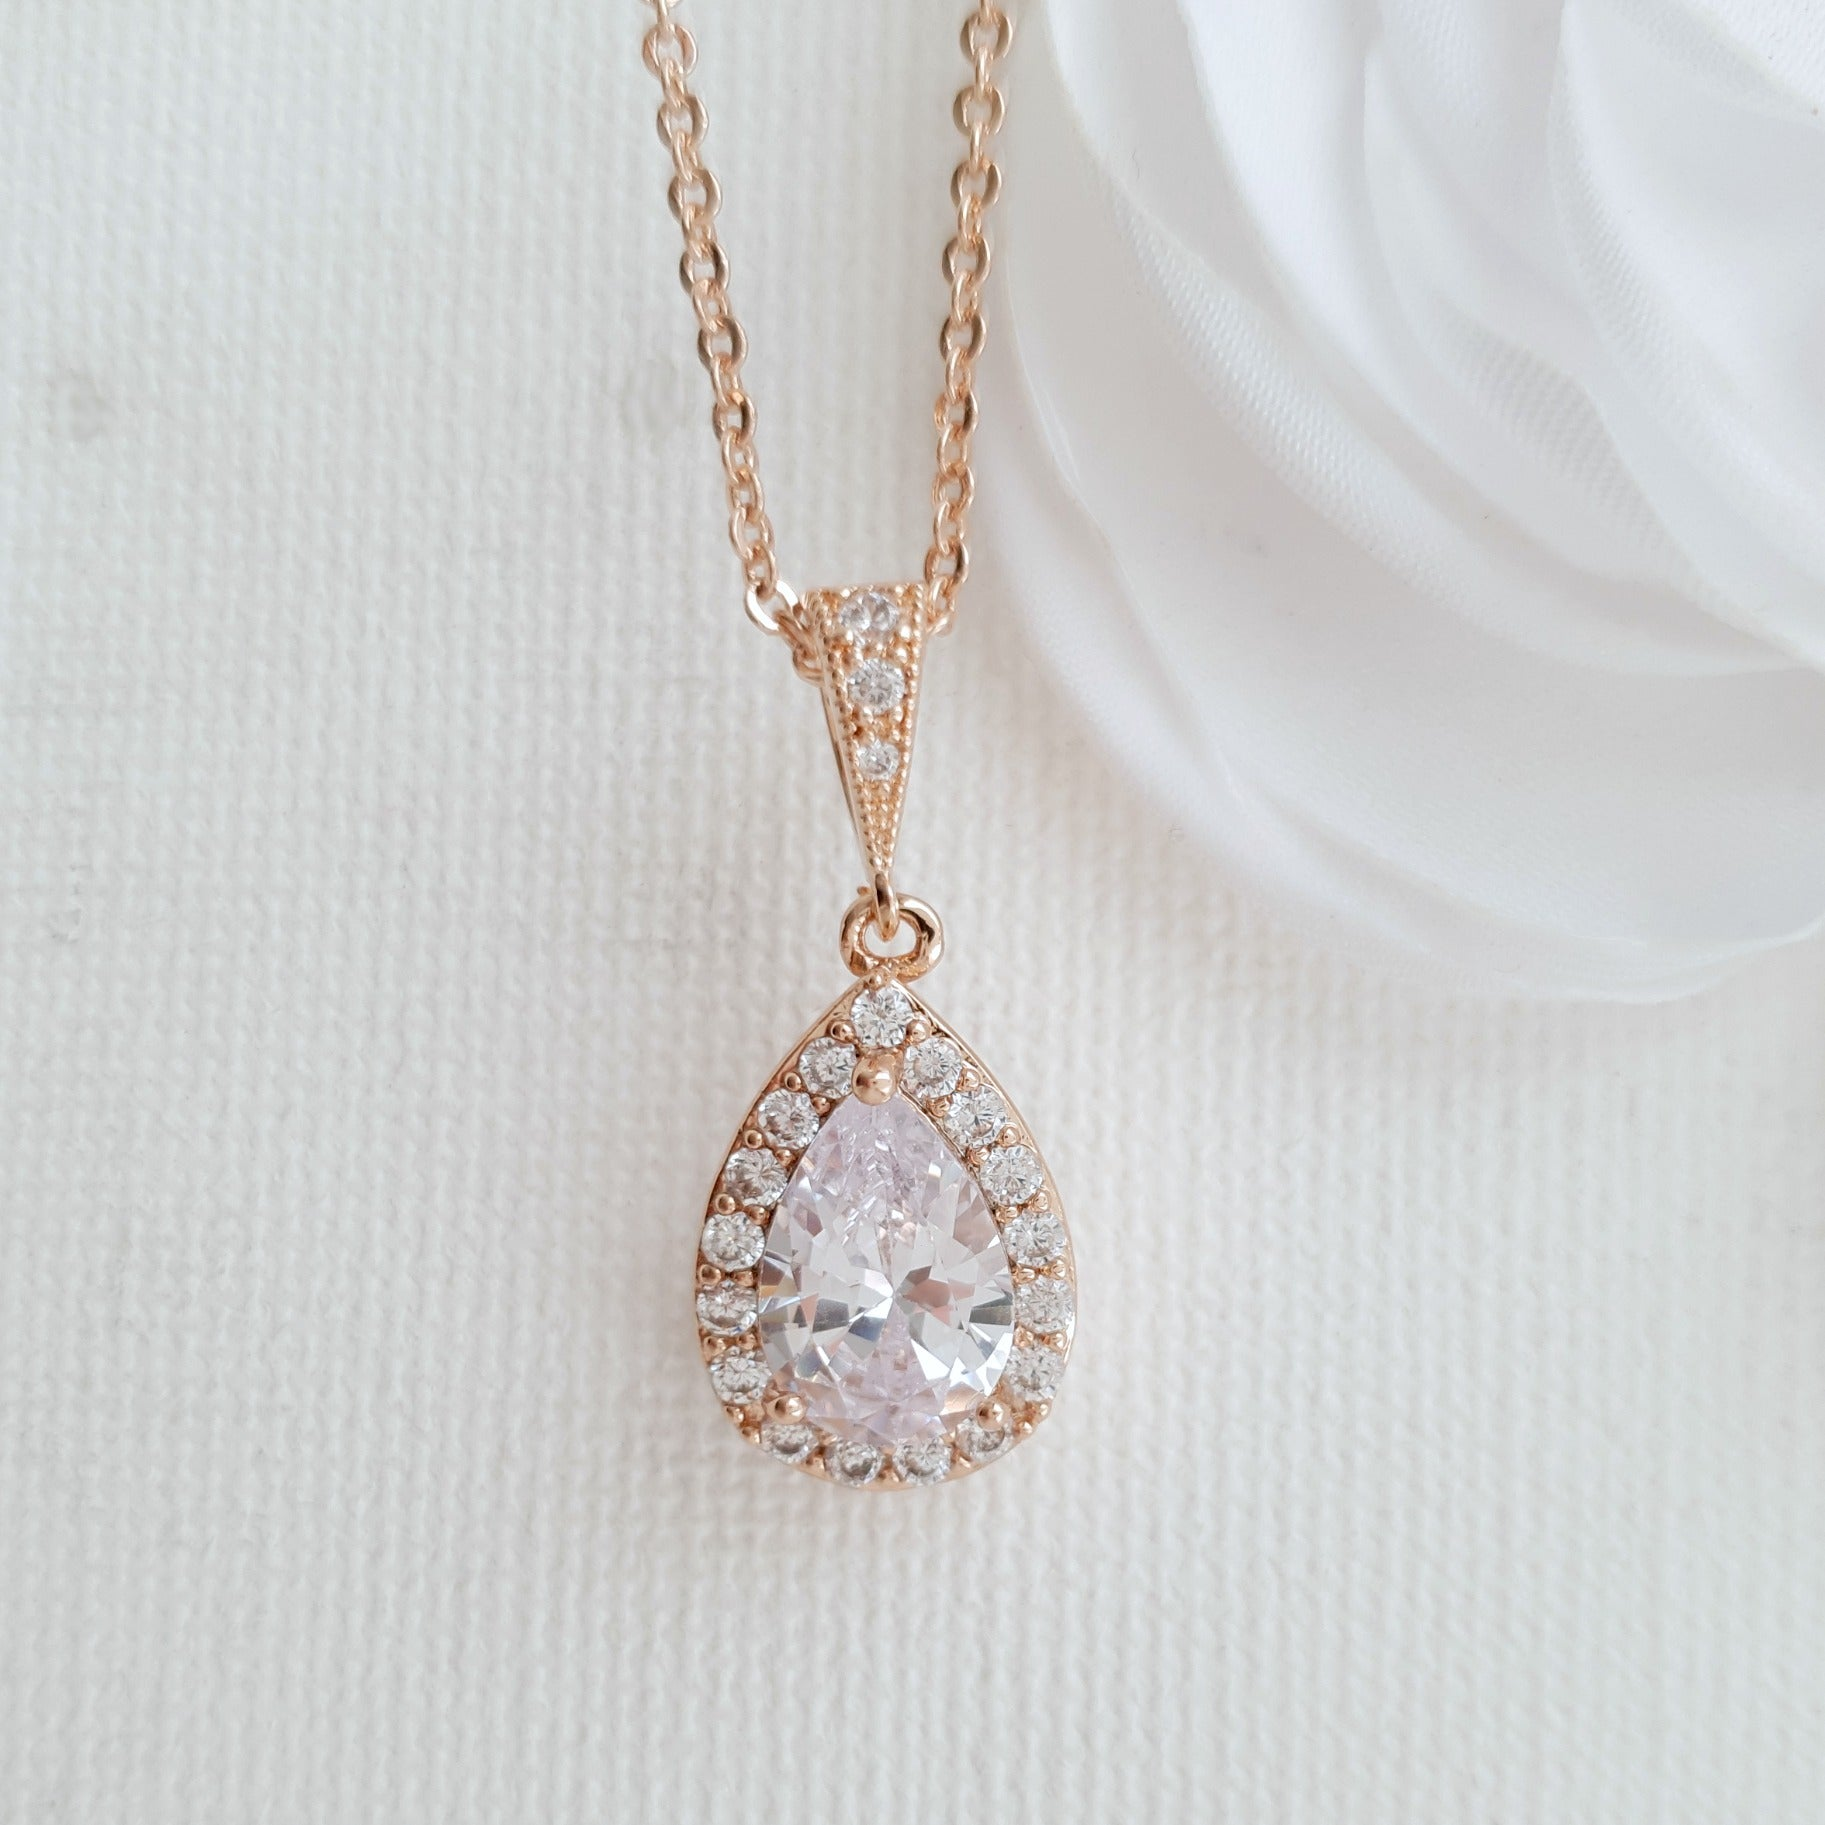 Rose Gold Necklace Bridal Clear Cubic Zirconia Small Teardrop Pendant Wedding Necklace Bridal Jewelry, Emma